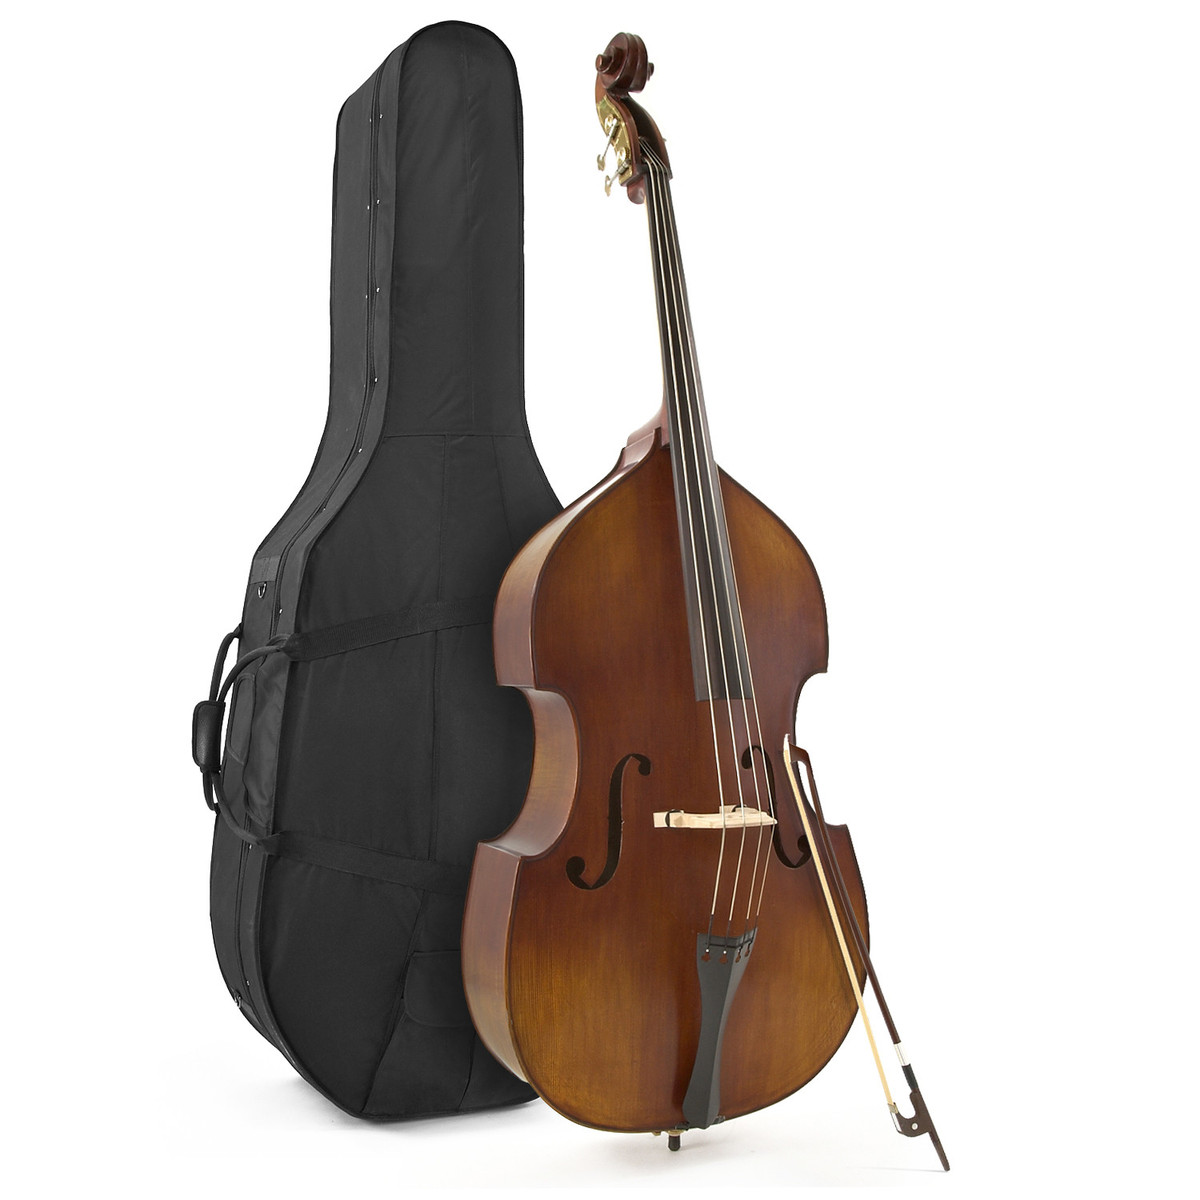 Image of Archer 3/4 Size Professional Double Bass by Gear4music